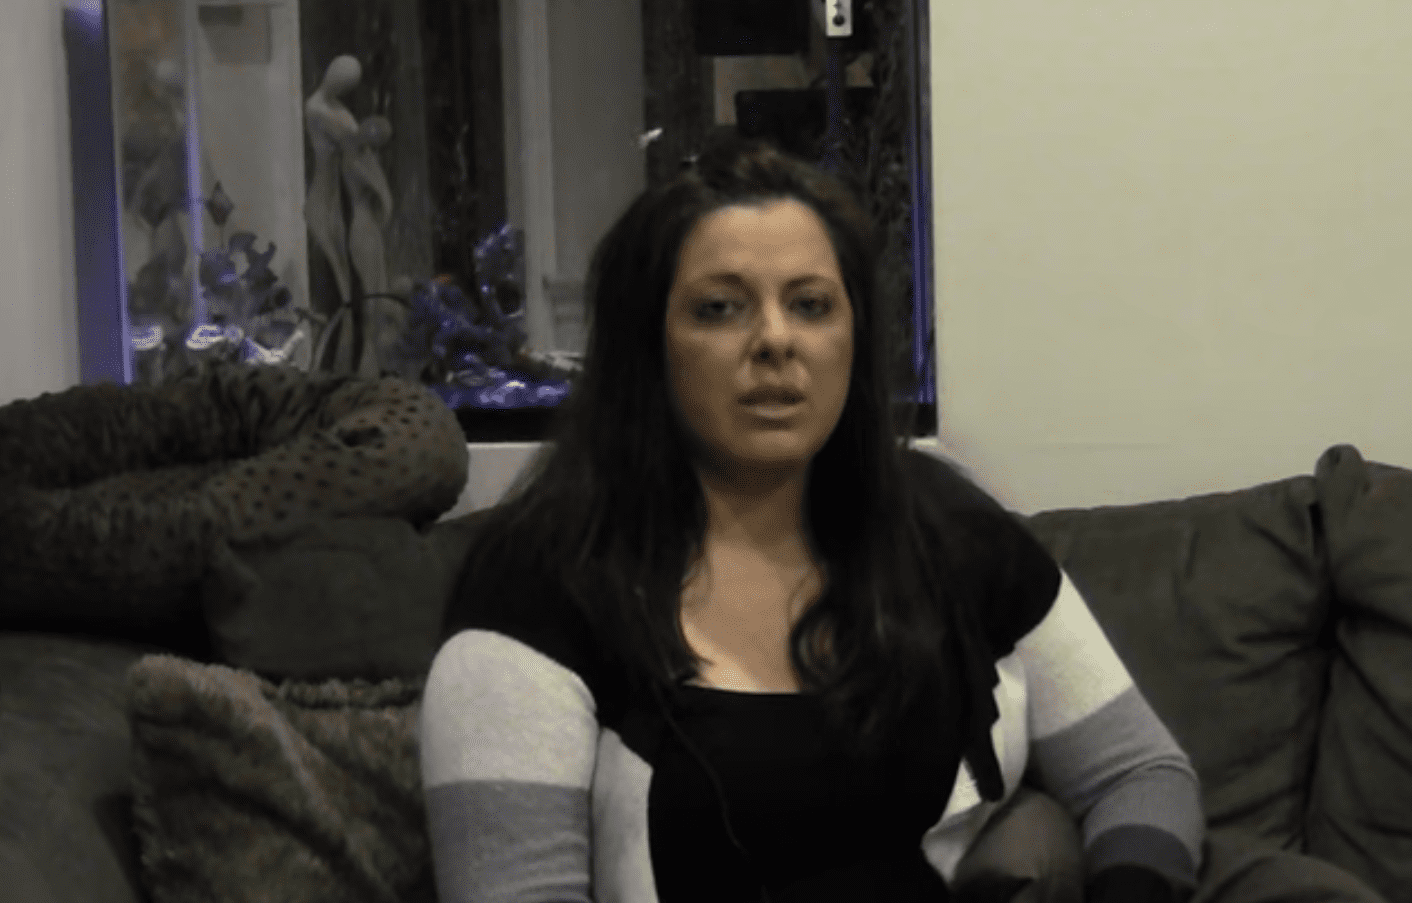 Dawn Marie speaks out in an interview for Wrestlers Rescue. | Photo: Youtube/MUPO ENTERTAINMENT LLC